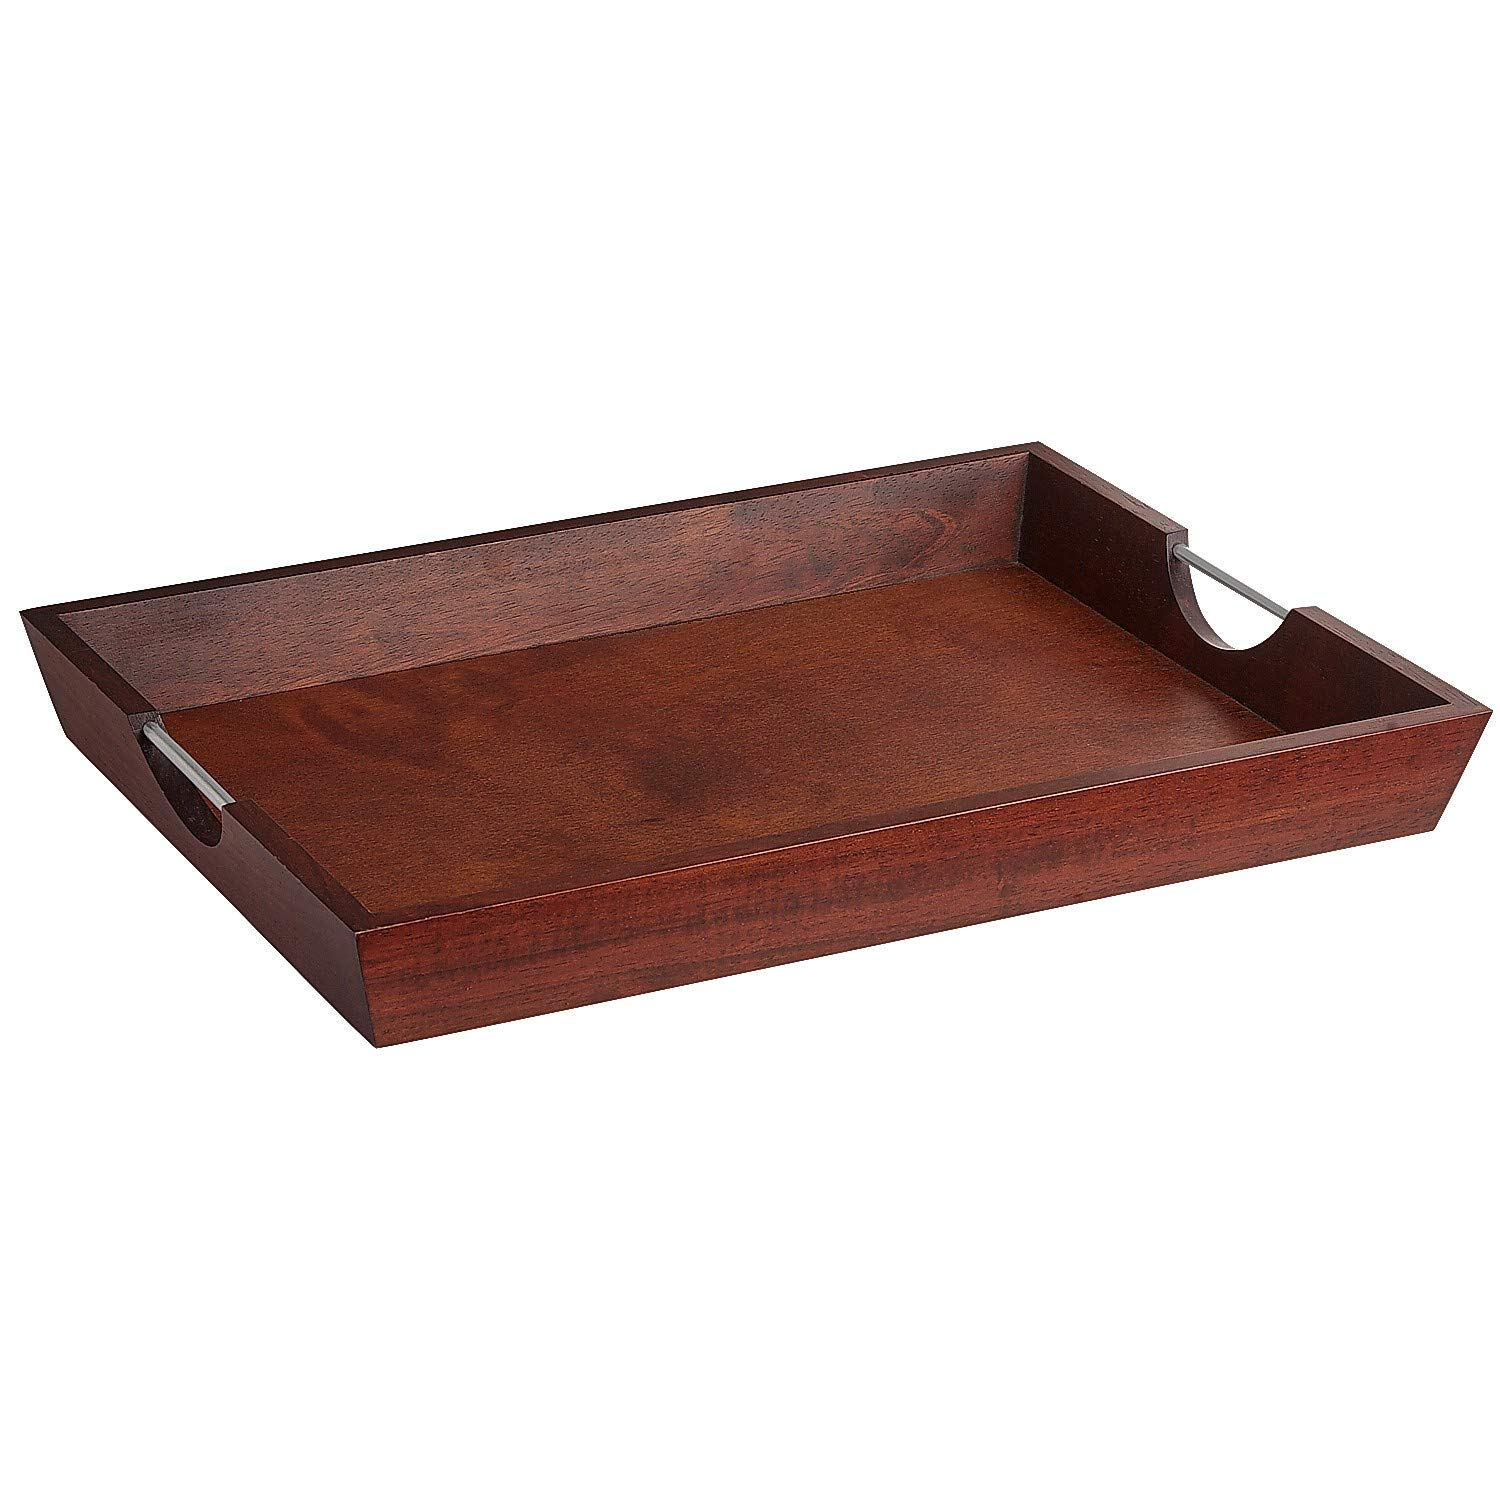 Brown Braden Decorative Home Decor Tray by Pier 1 Imports